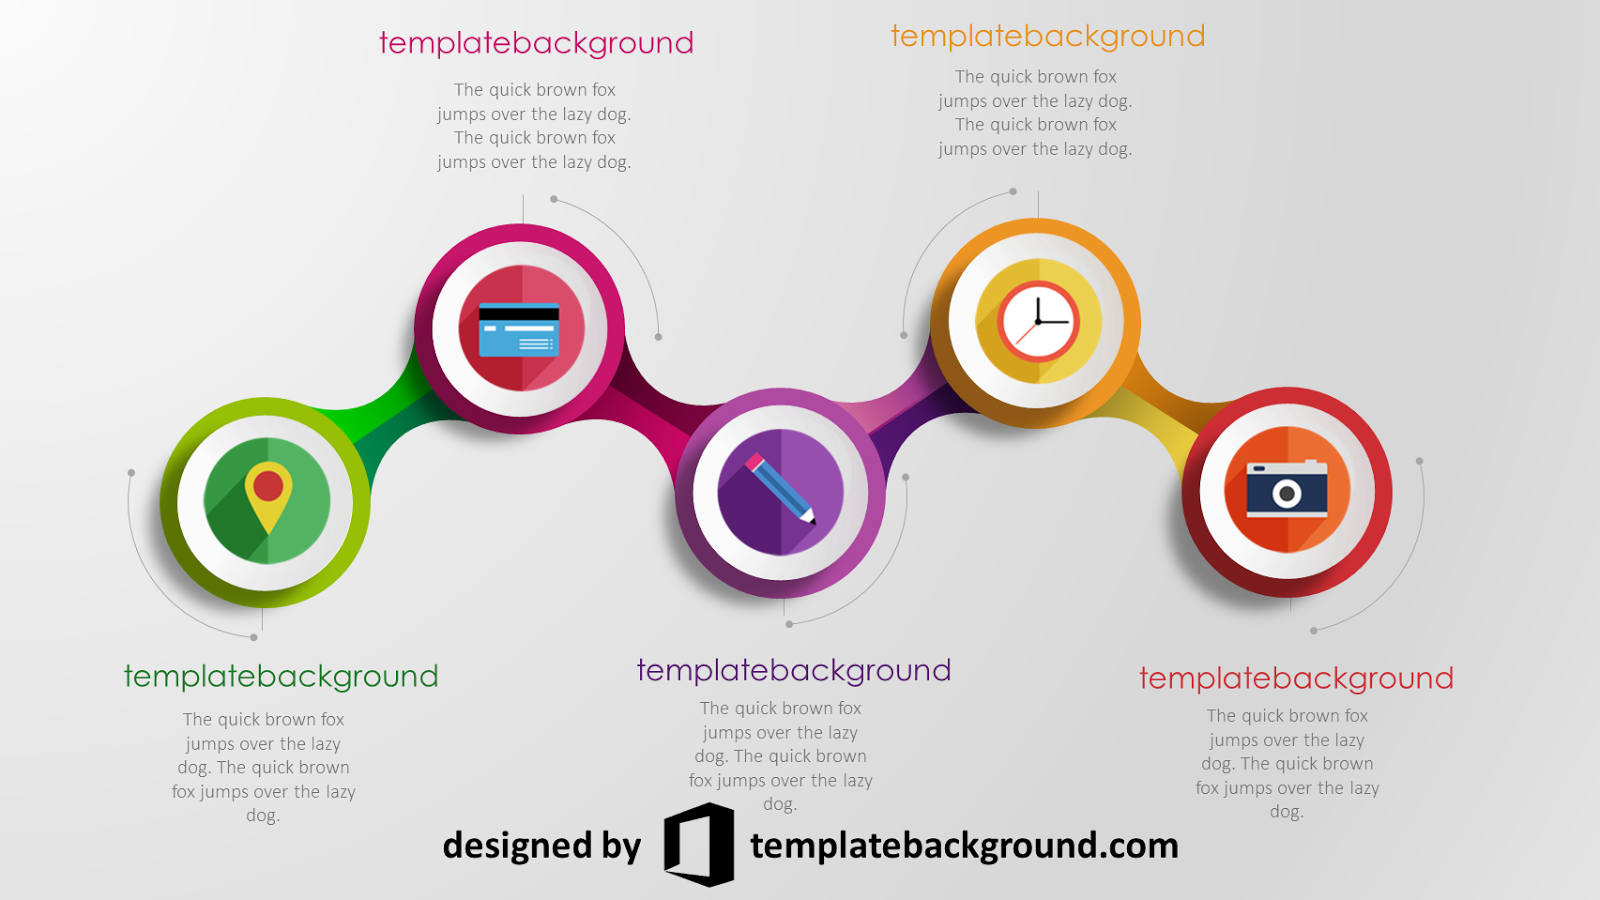 Free Powerpoint Templates Png Free Powerpoint Templates Png Transparent Images 18014 Pngio